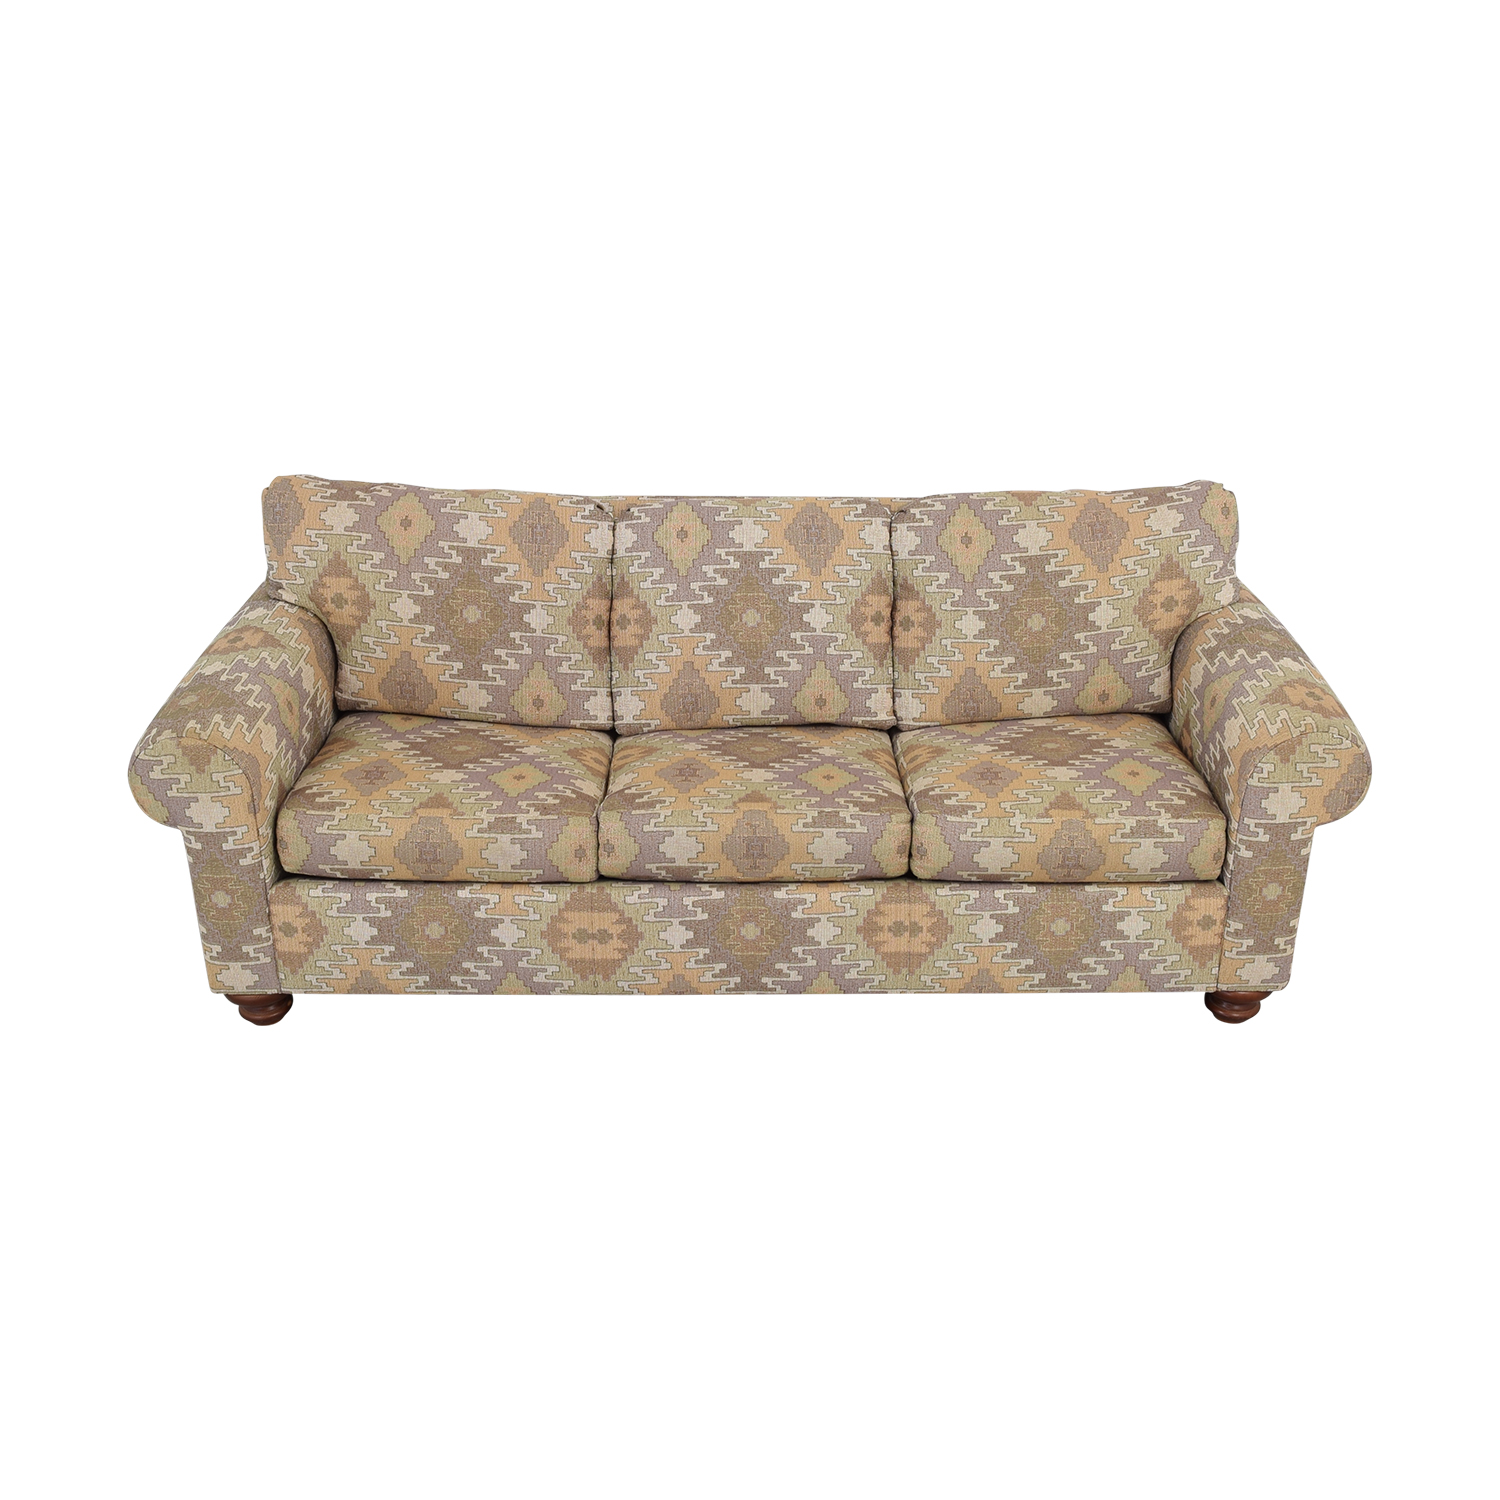 Cerrito Cerrito's Queen Sleeper Sofa price